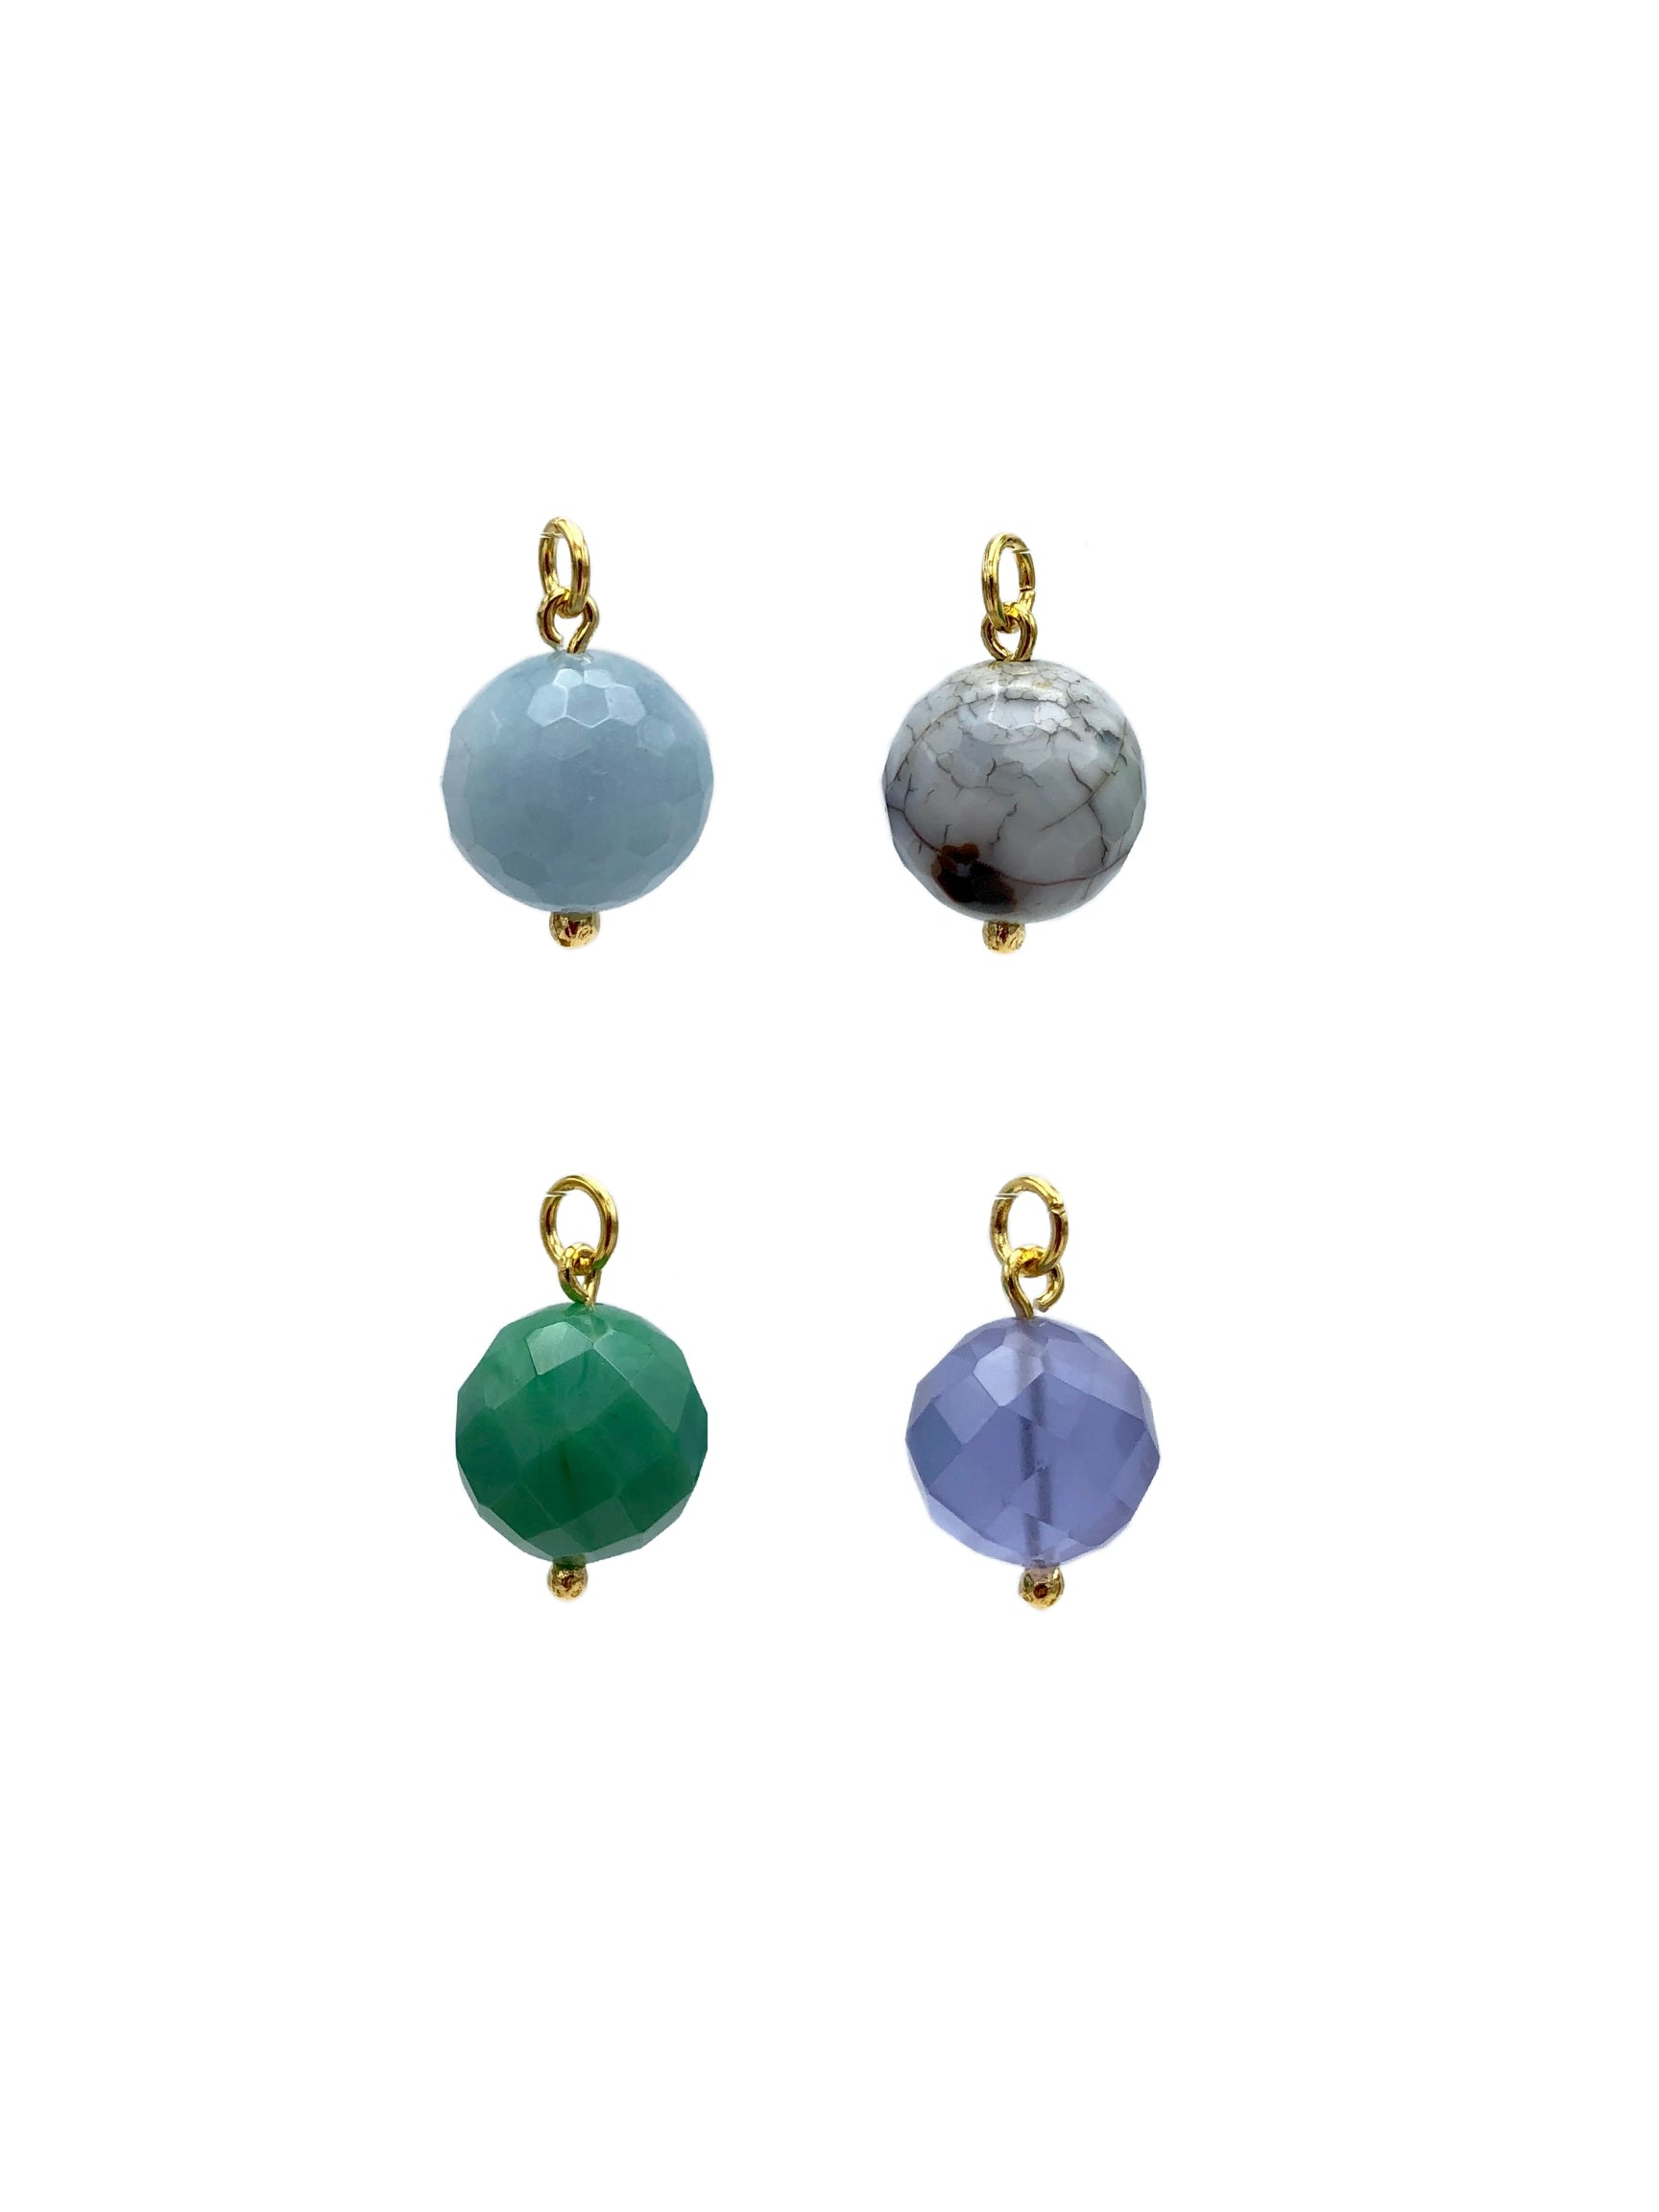 16MM Faceted Ball Earring Charms-Womens Charms for Earrings-JAREDJAMIN Jewelry Online-Aquamarine Ball Charm-JARED JAMIN